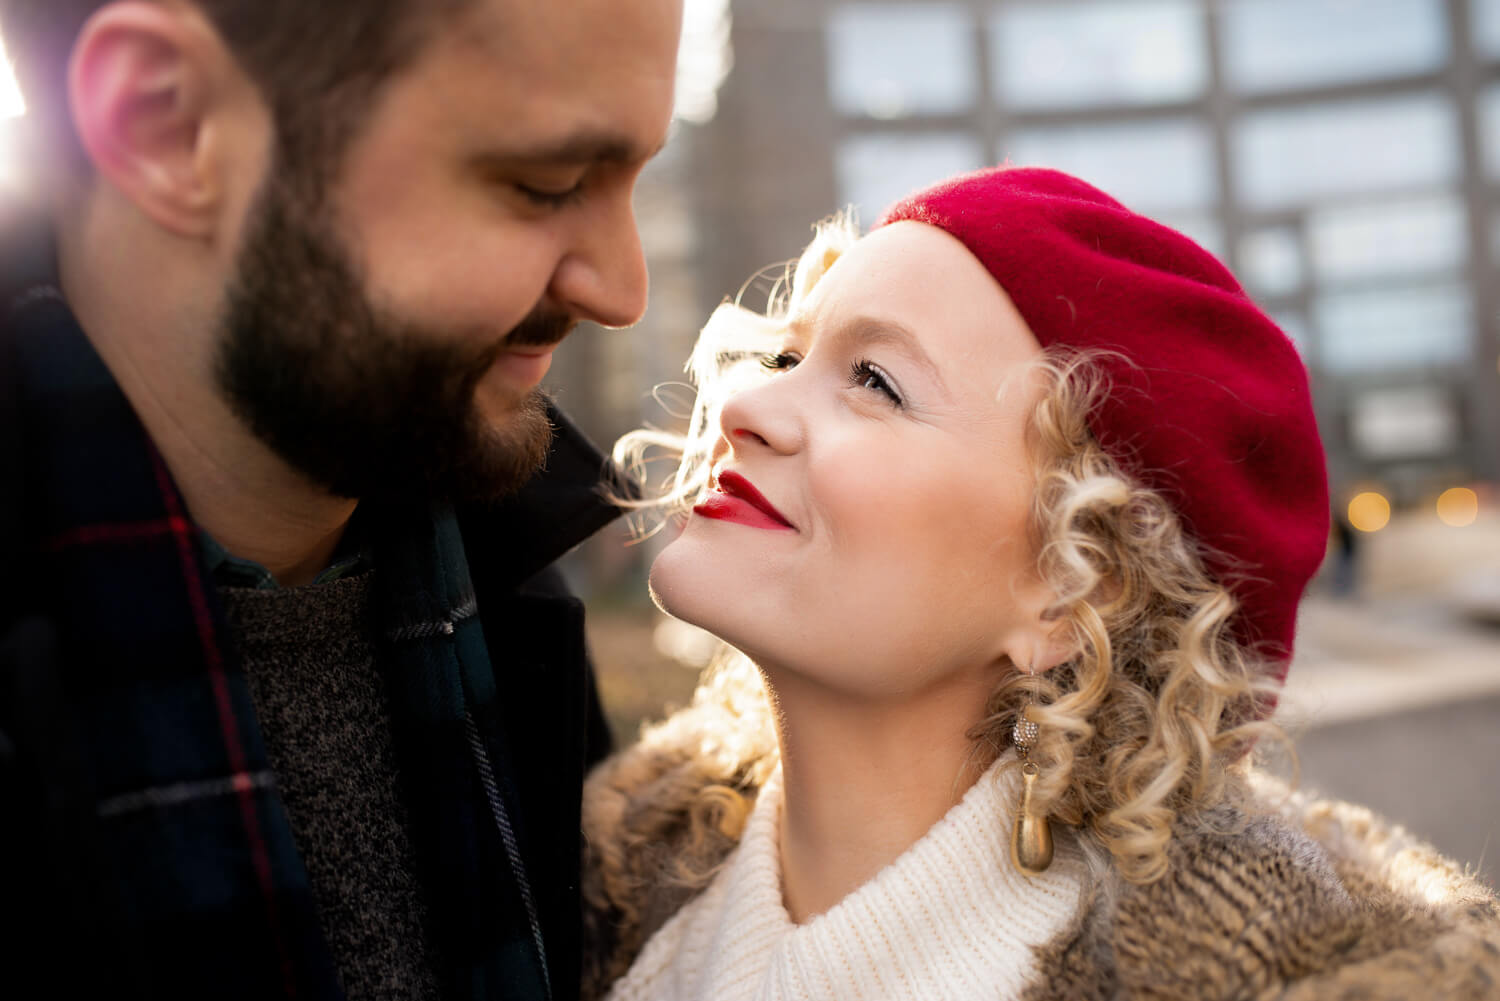 New York City actress Amanda Jane Cooper poses with her fiancé Andrew Bell during their NYC engagement session with dreamy photographer ALN IMAGES. Best New York City Wedding and engagement Photographer.